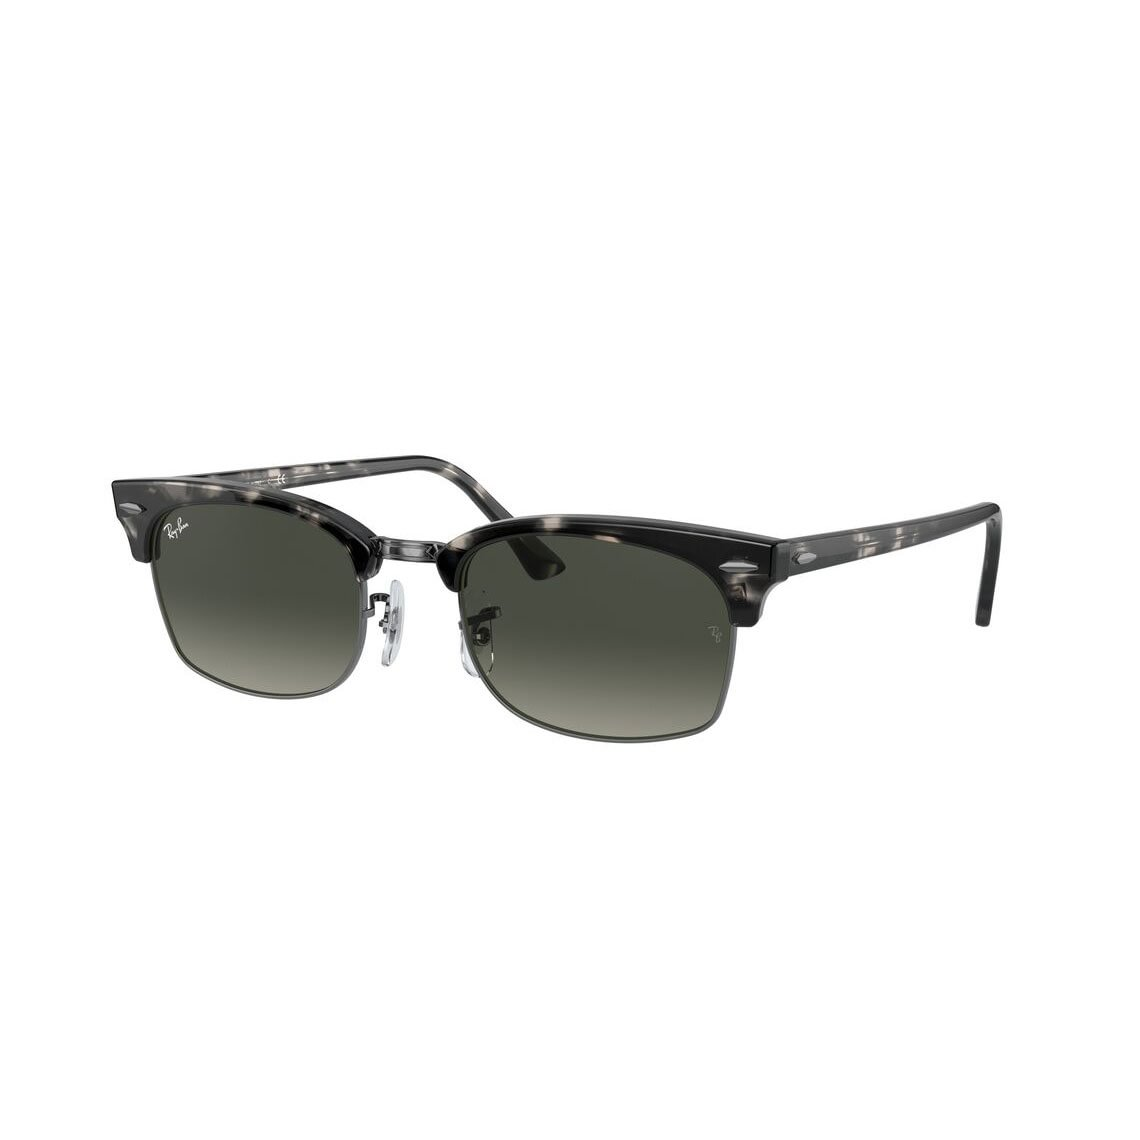 Ray-Ban Clubmaster Square RB3916 133671 5221